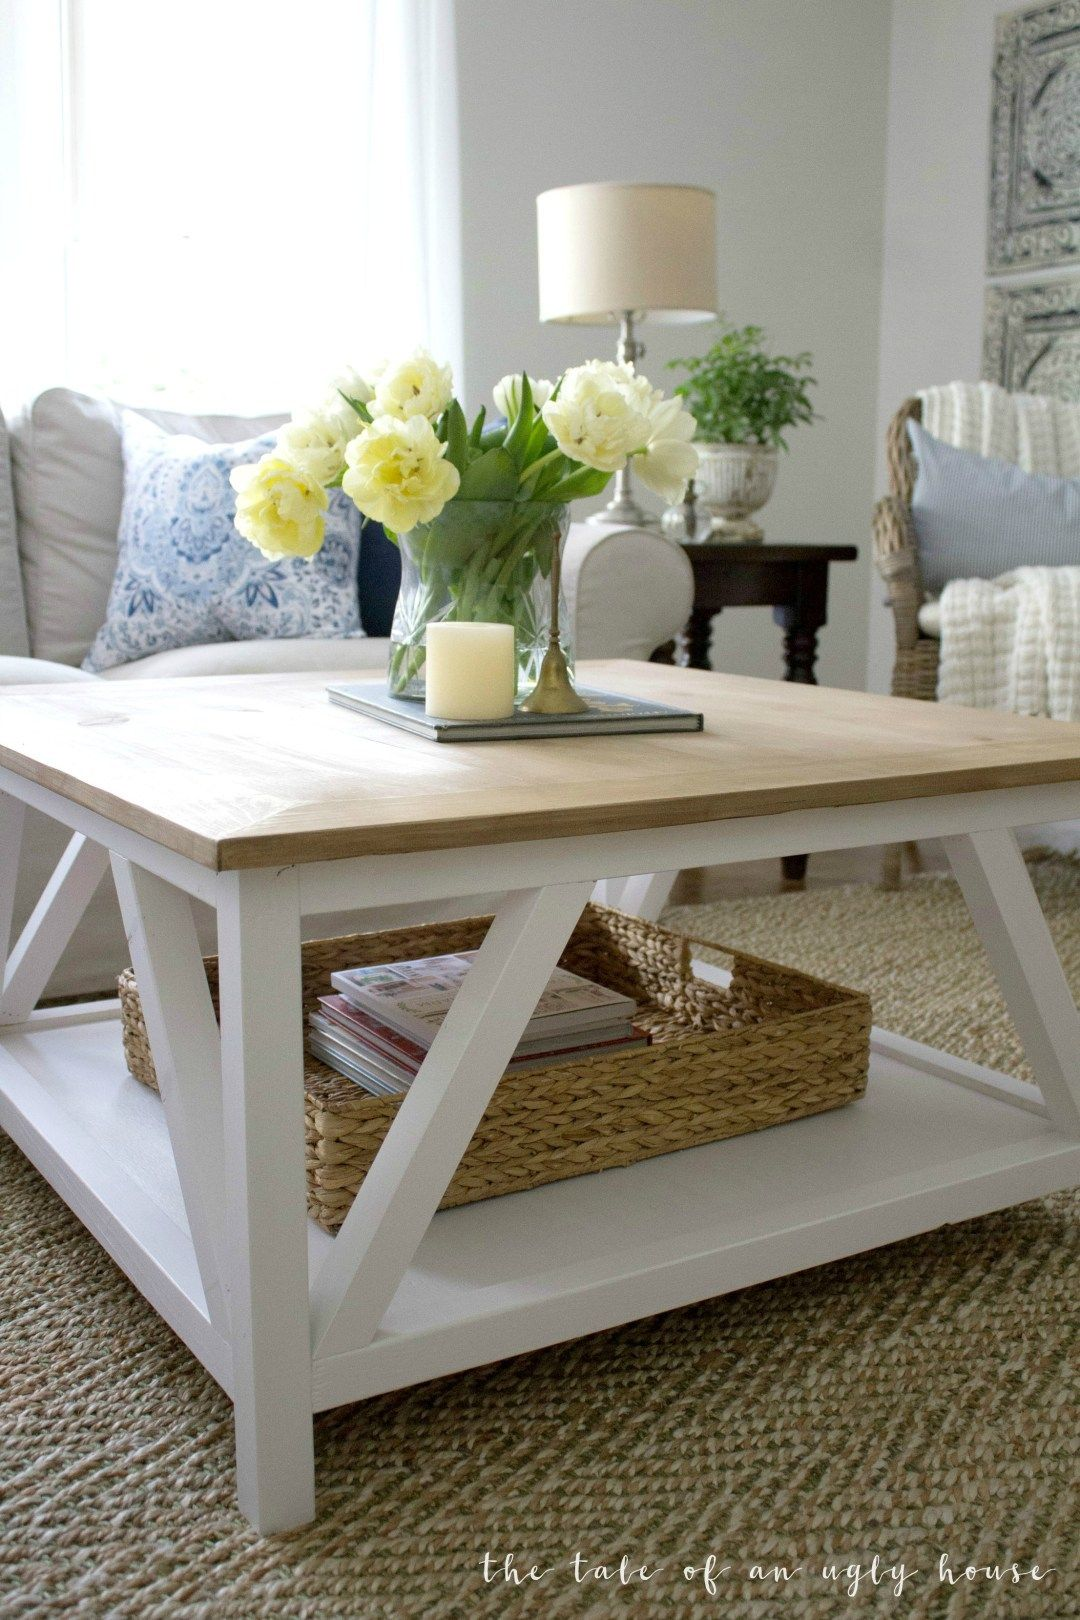 diy modern farmhouse coffee table house deco decorating square end ideas sincerely marie designs range oven white chest lazy boy wing back chairs menu holder magnolia home